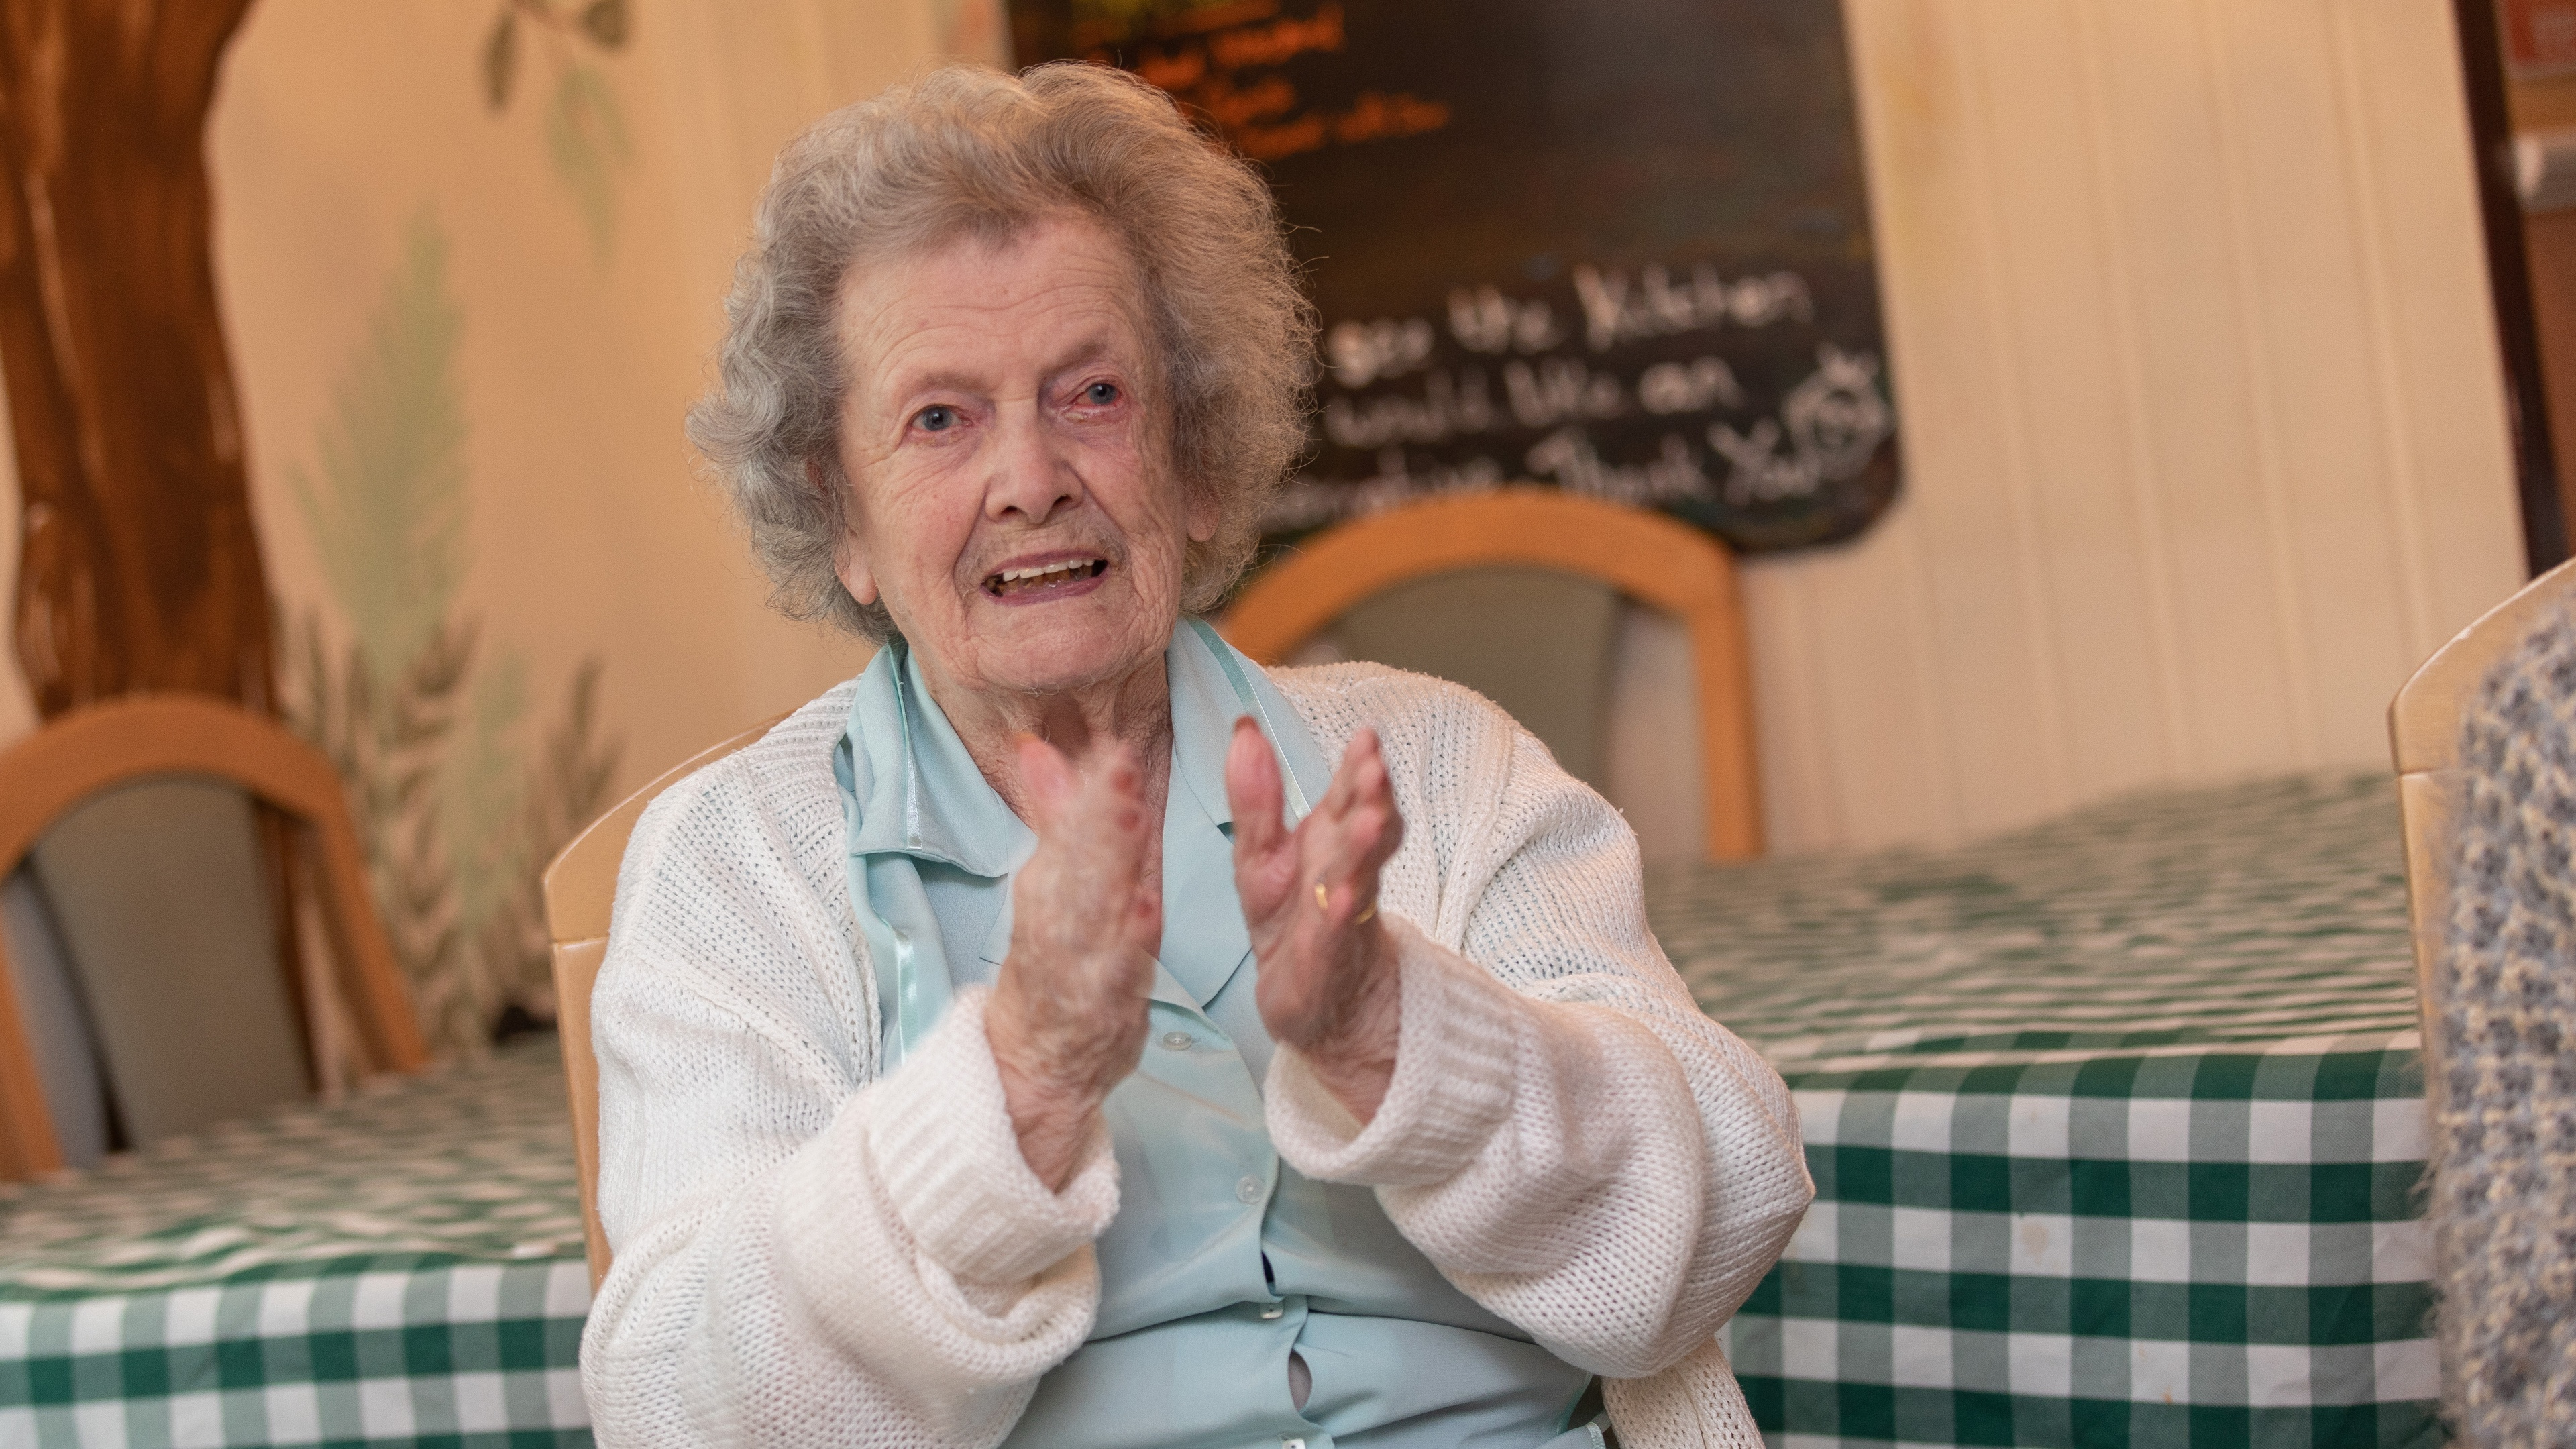 Care home resident